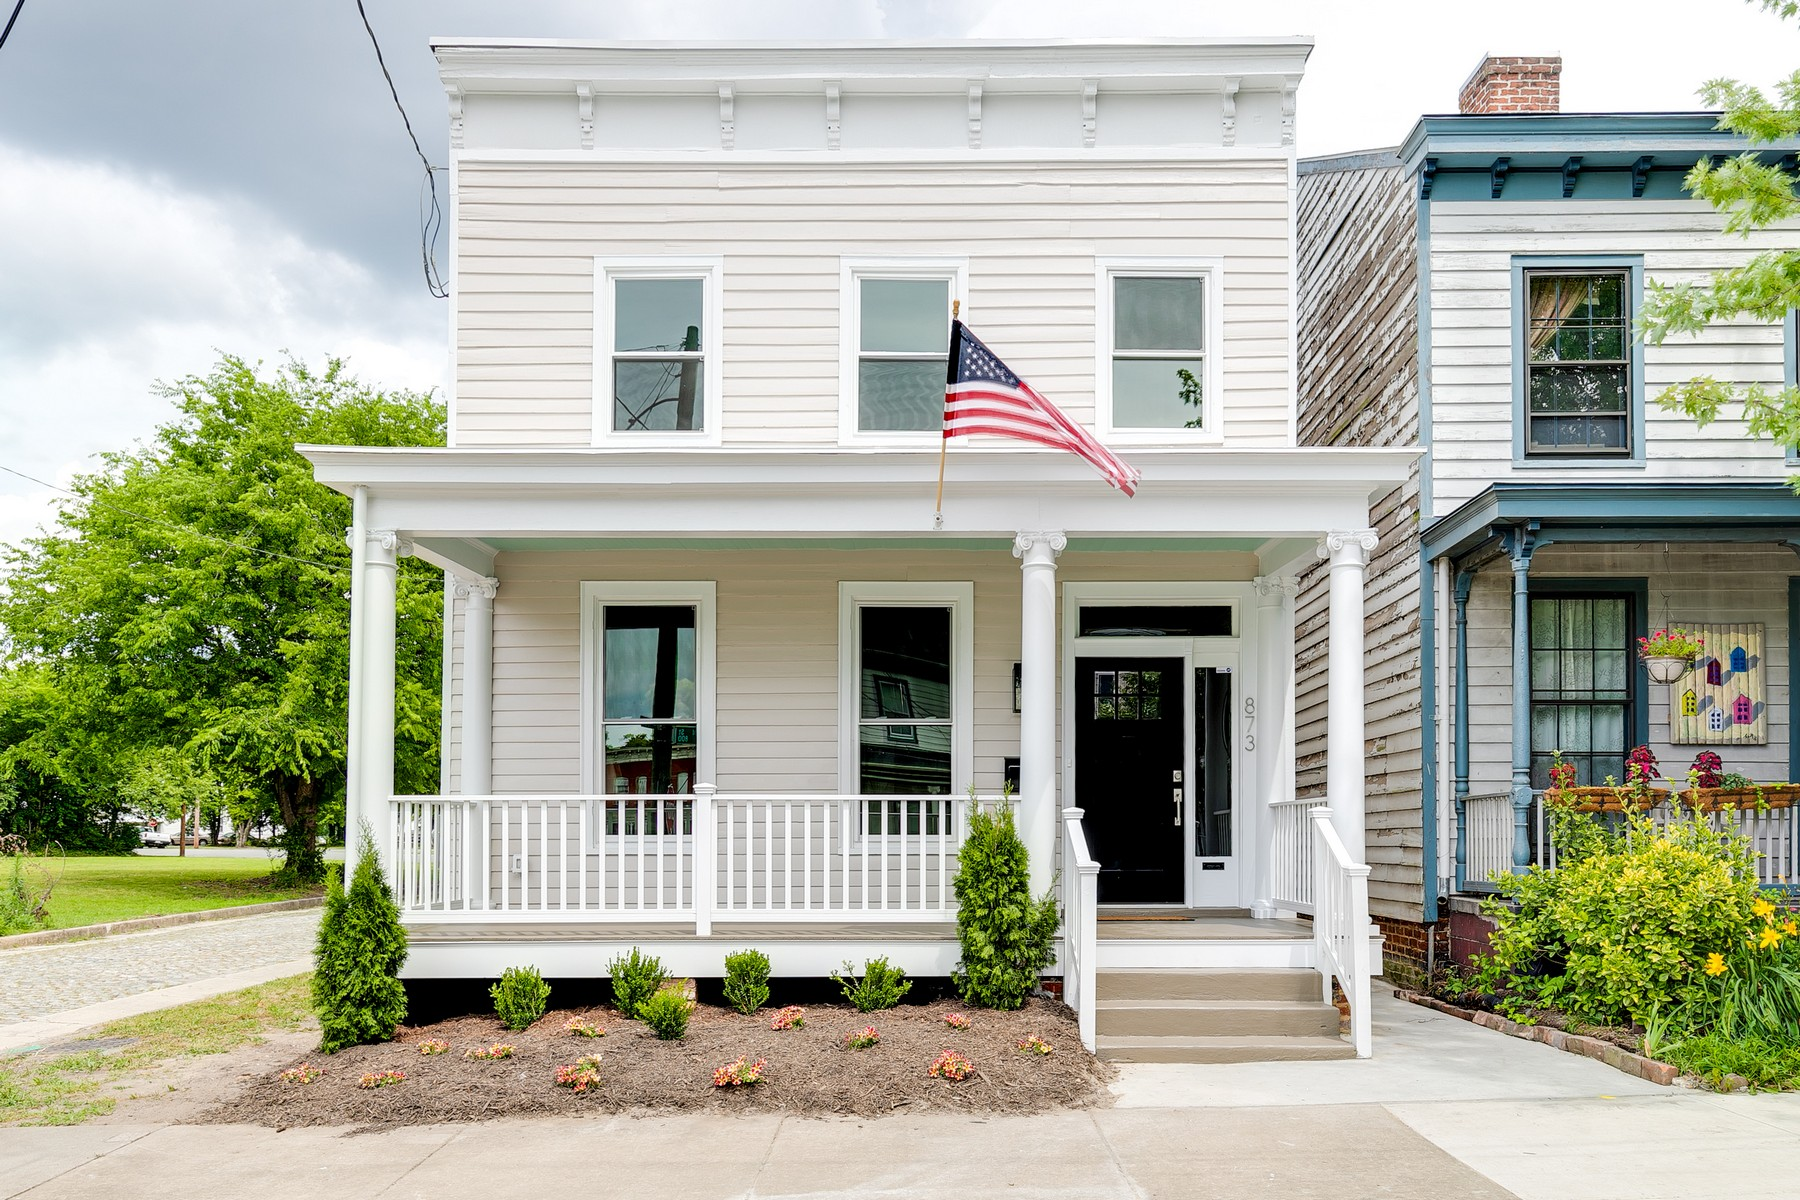 Single Family Homes for Active at 873 N. 22nd Street 873 22nd Street Richmond, Virginia 23223 United States